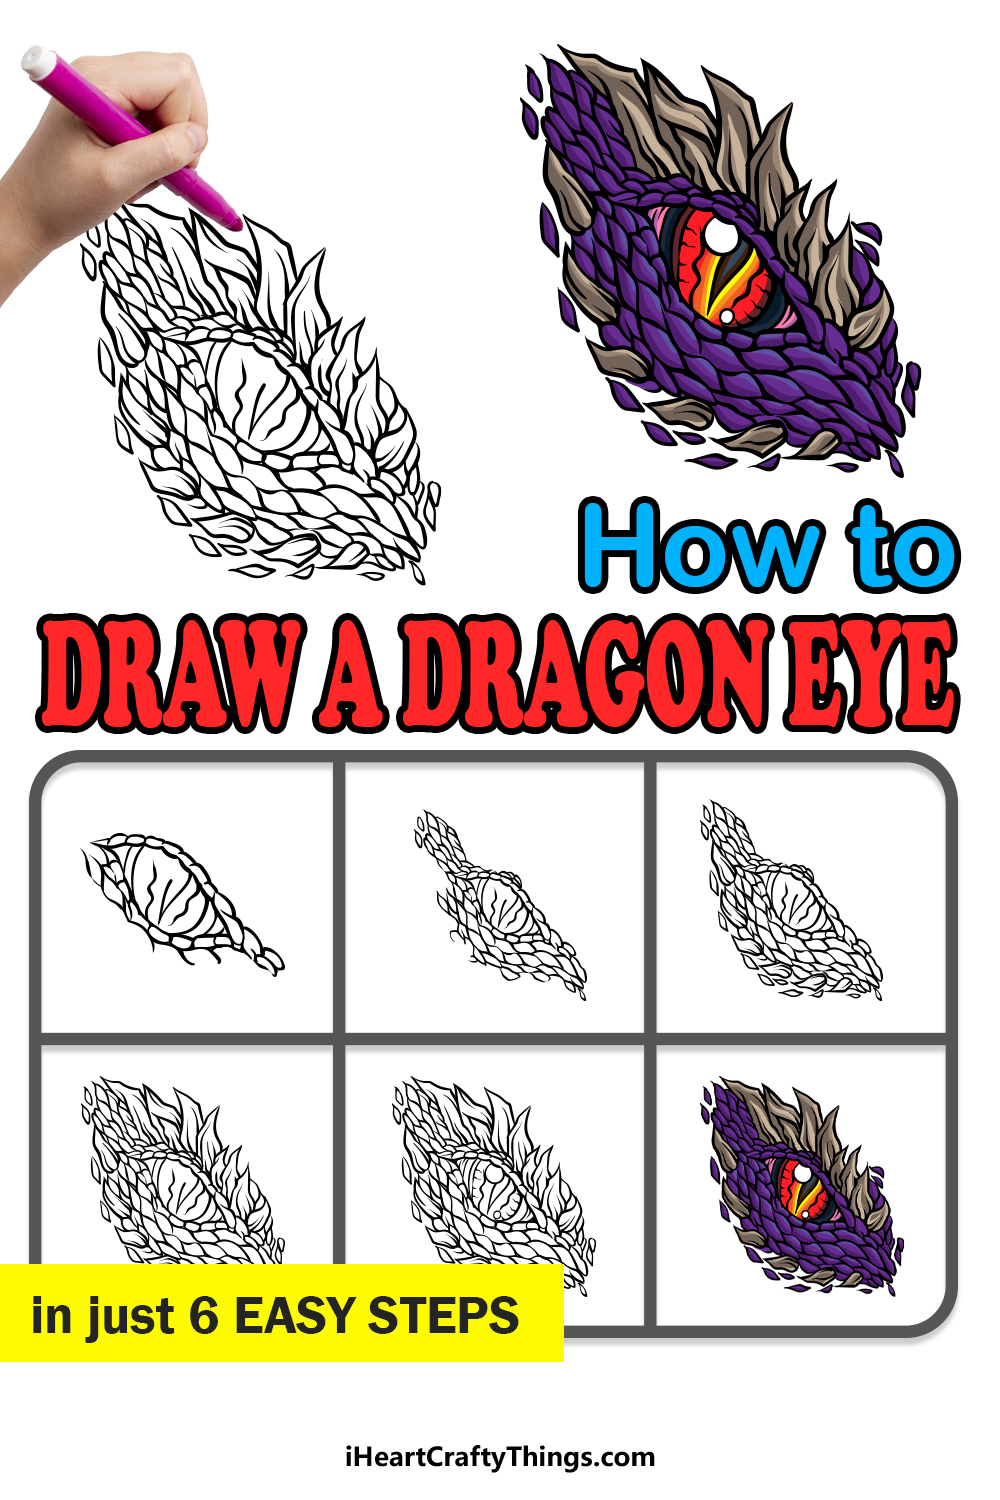 how to draw a dragon eye in 6 easy steps